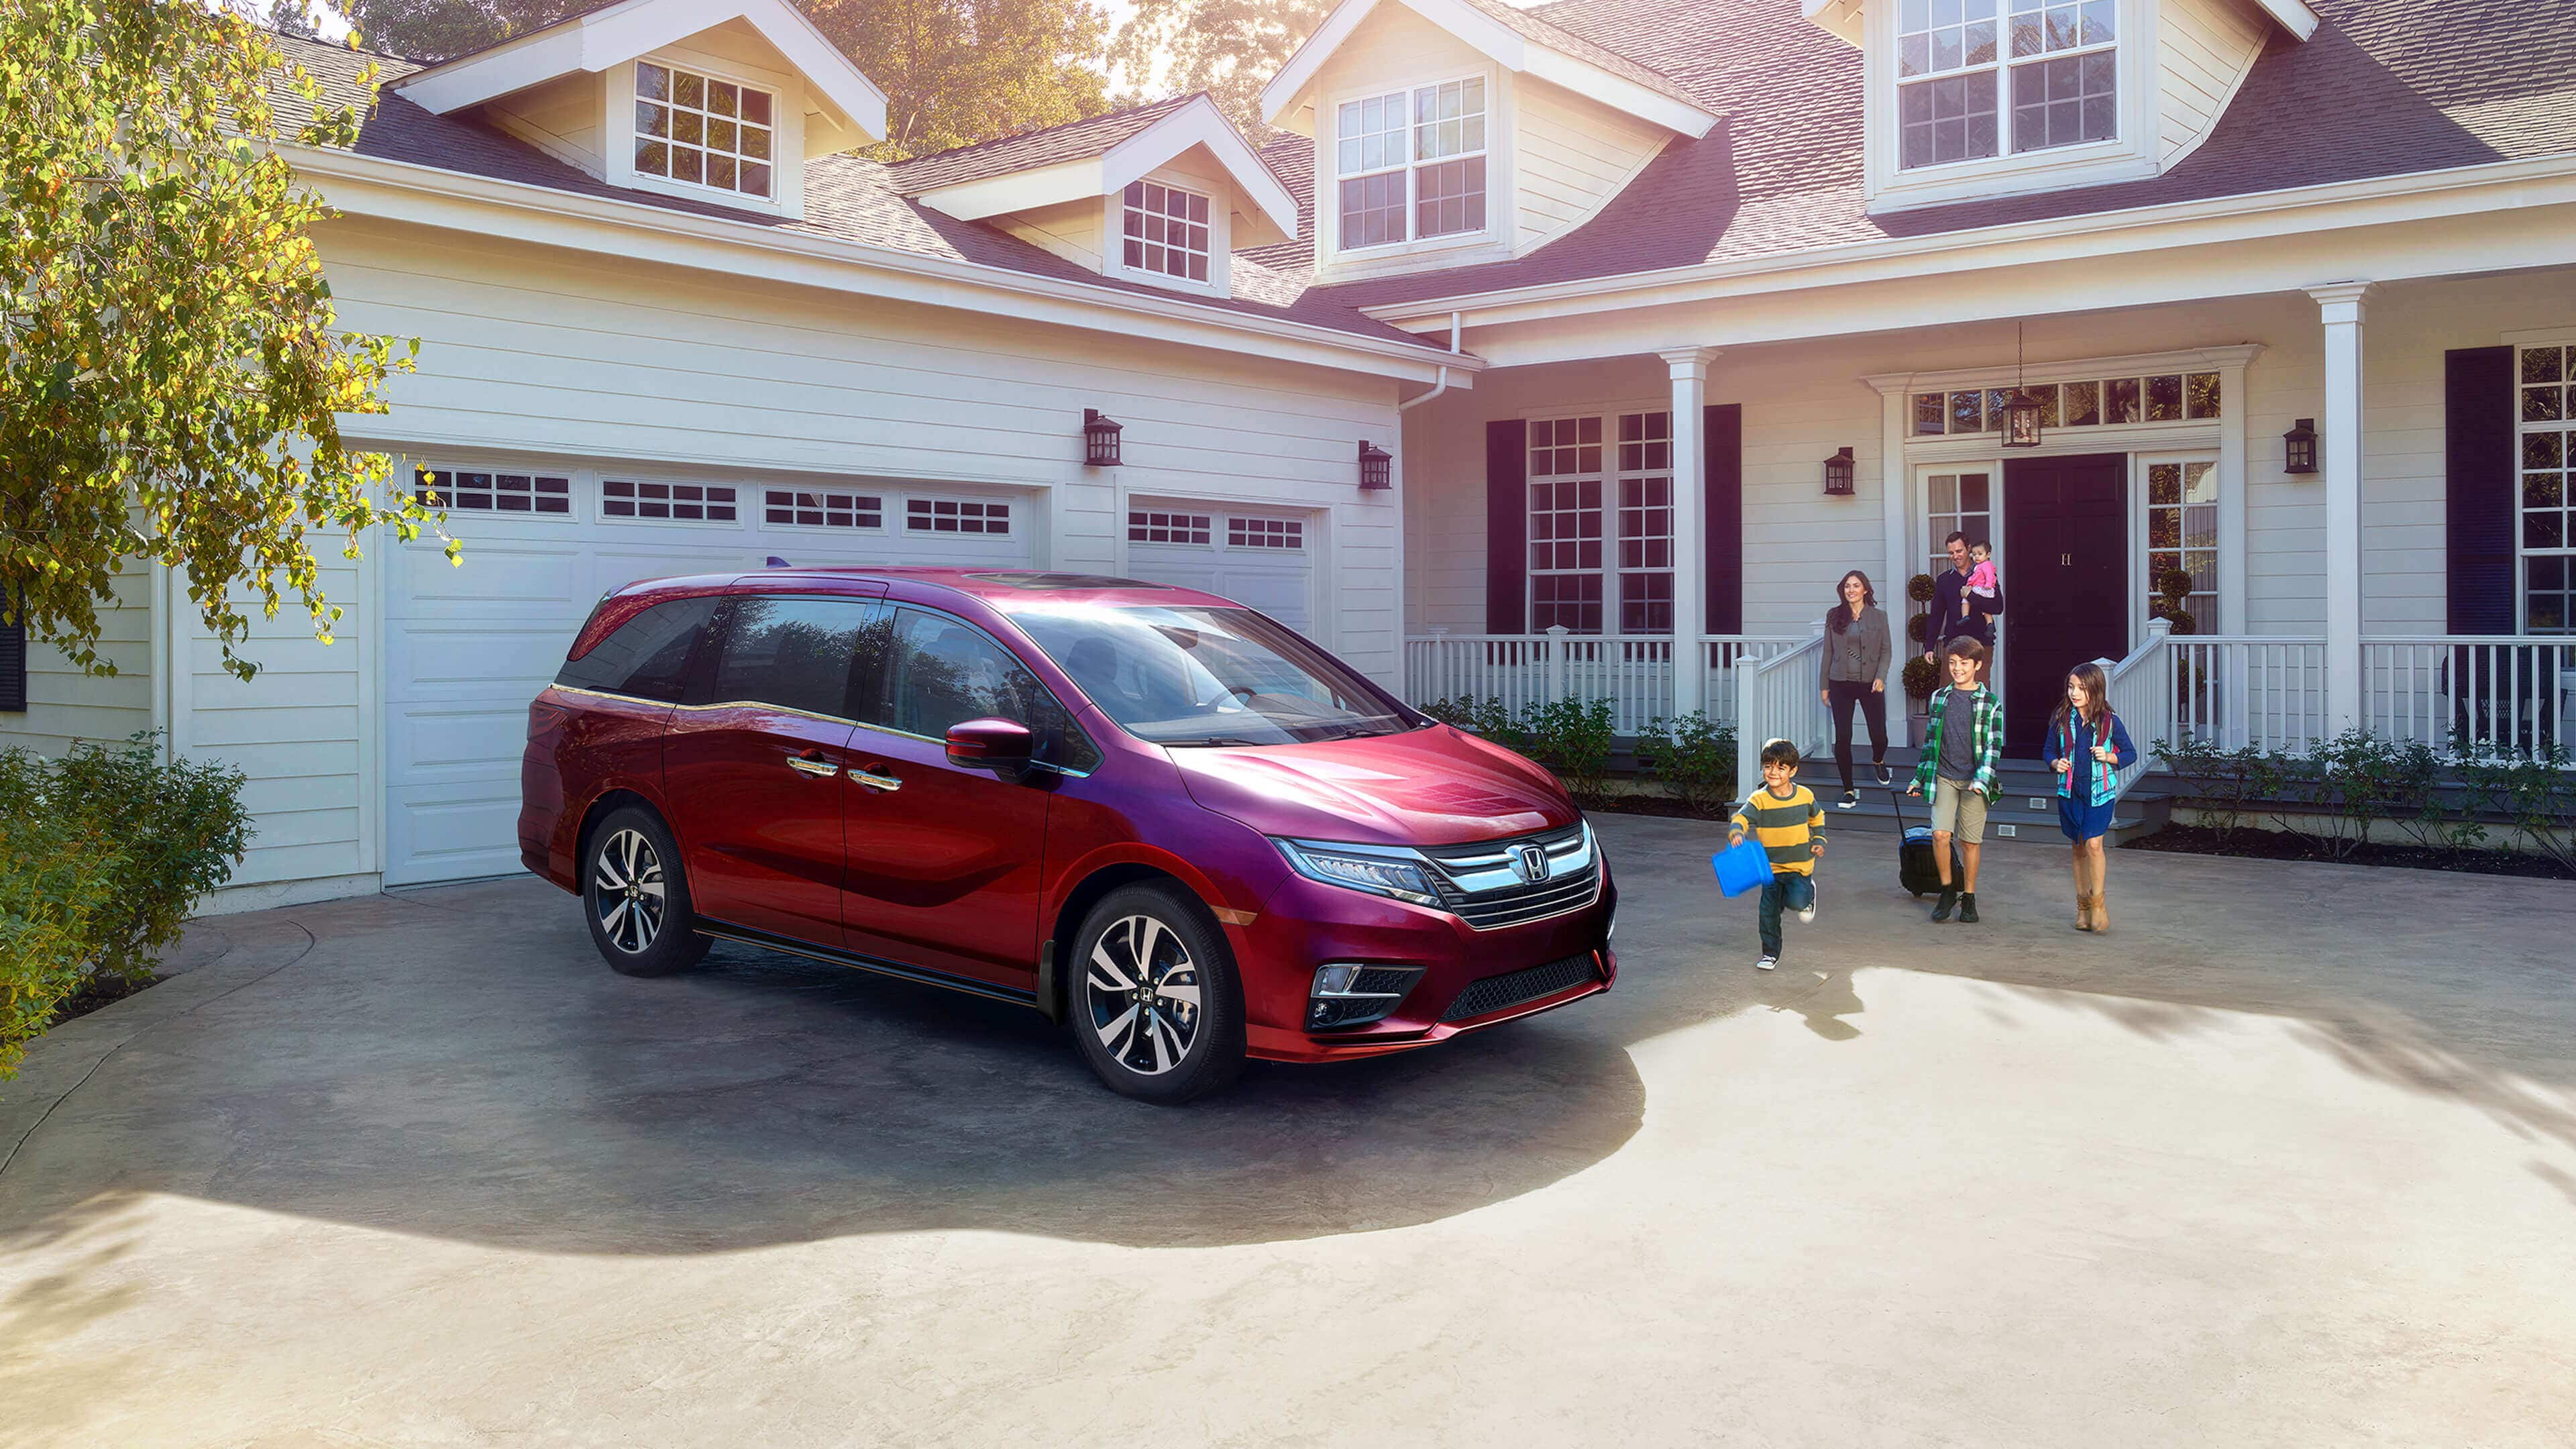 2020 Honda Odyssey parked in front of a garage with a family coming out to it from their house